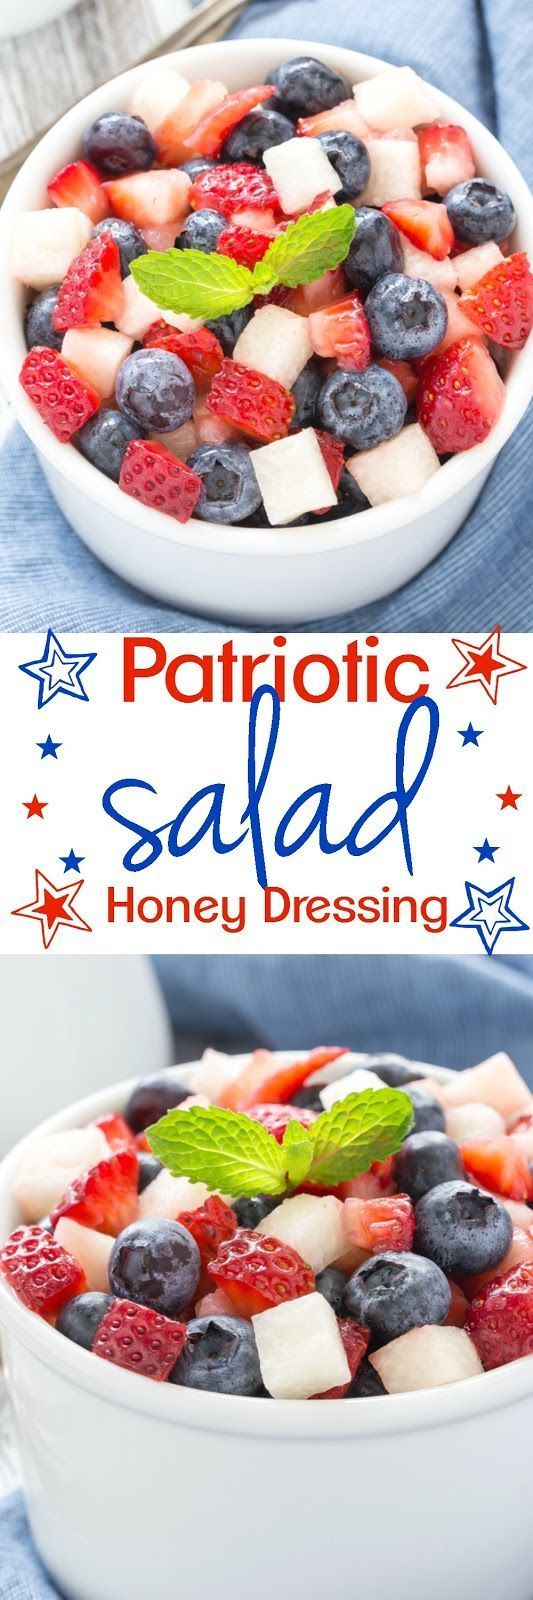 Let's hear it for the red, white and blue with this fresh salad drizzled with honey poppy seed dressing! It's worthy of any celebration!